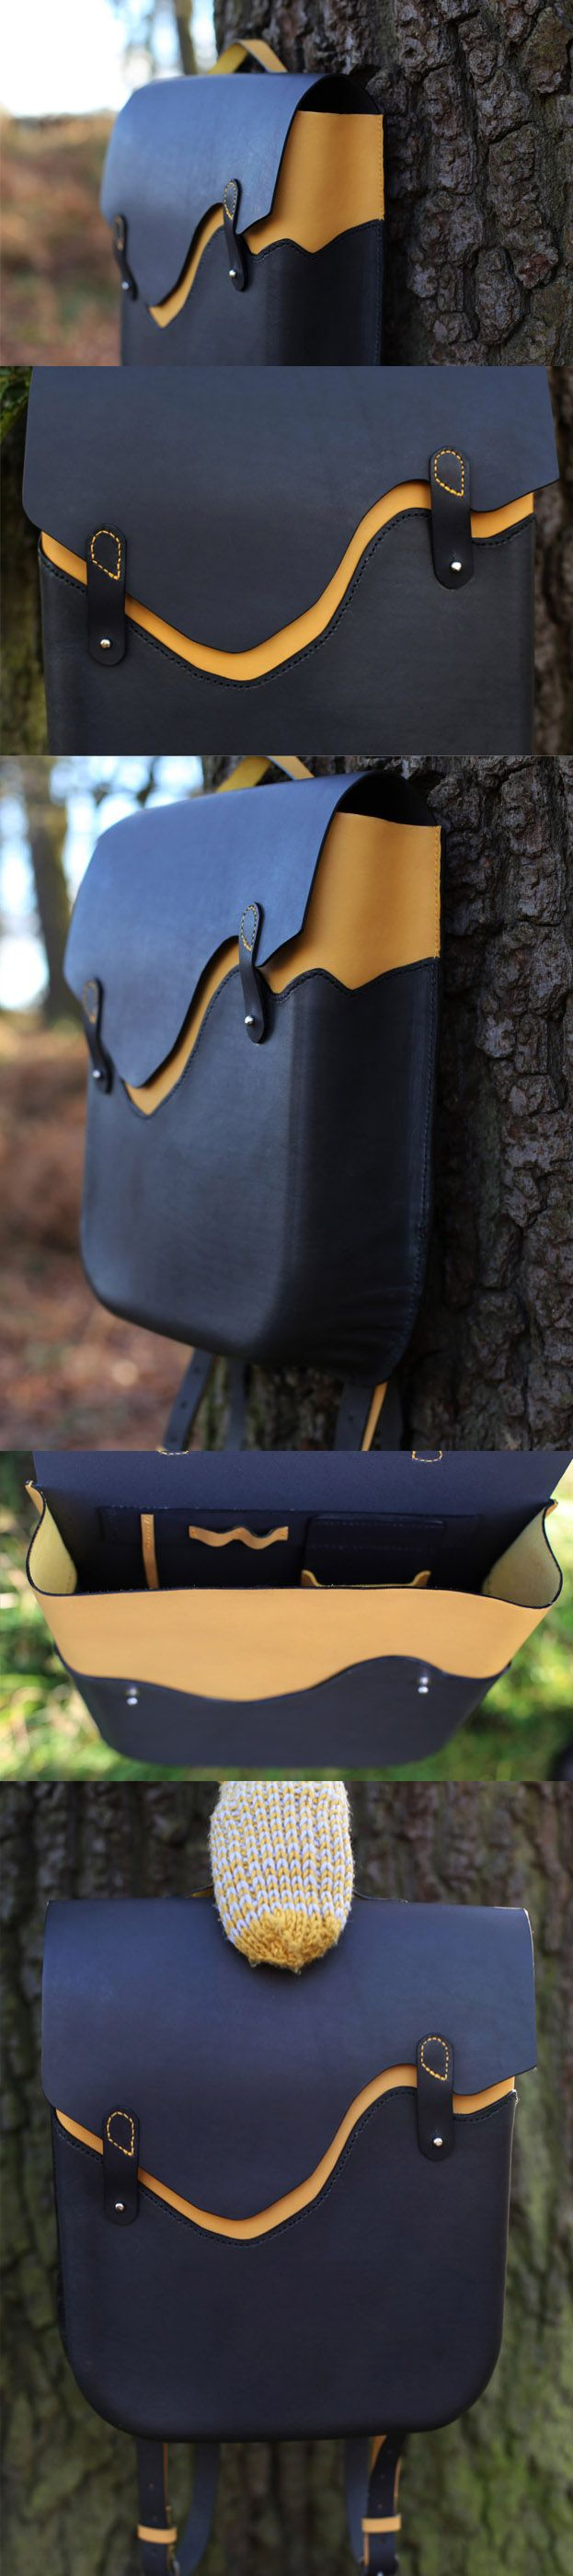 Custom Made Thick Genuine Italian Leather Backpack. Yellow/Grey, Hand Stitched/Wet Moulded 100% Handmade @castaner